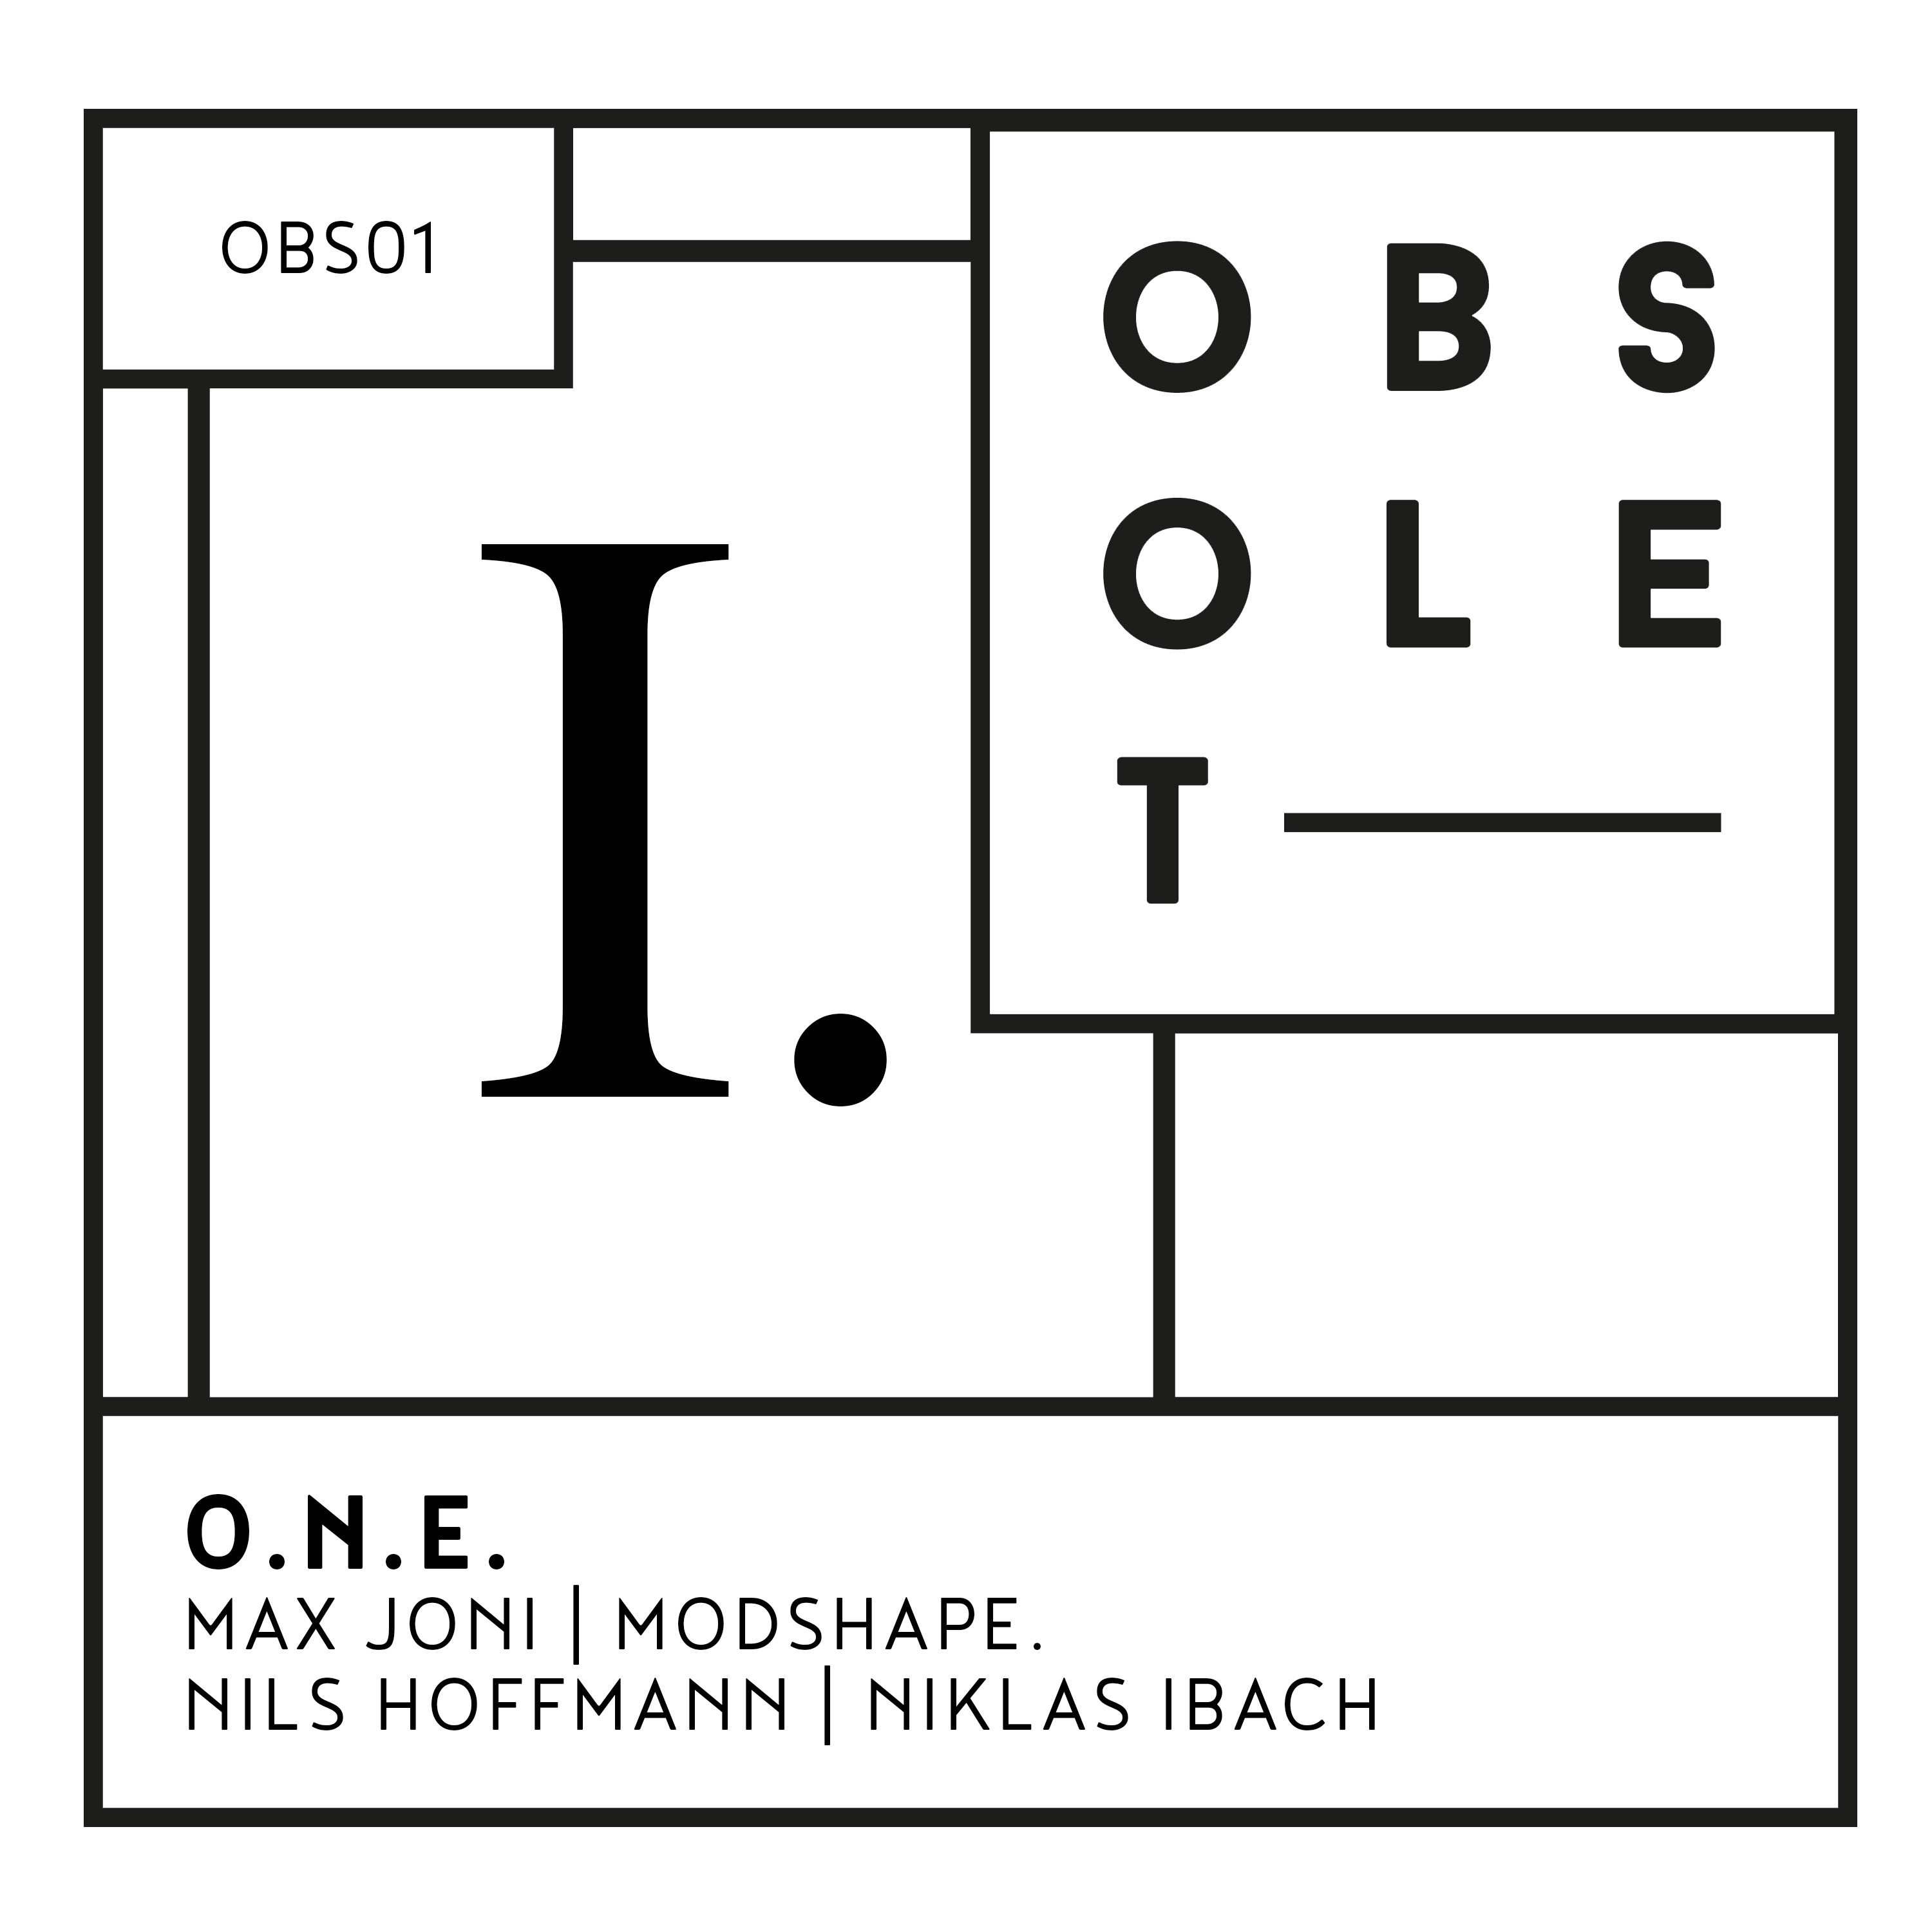 02_COVER OBSOLET_01_3000x3000px_01